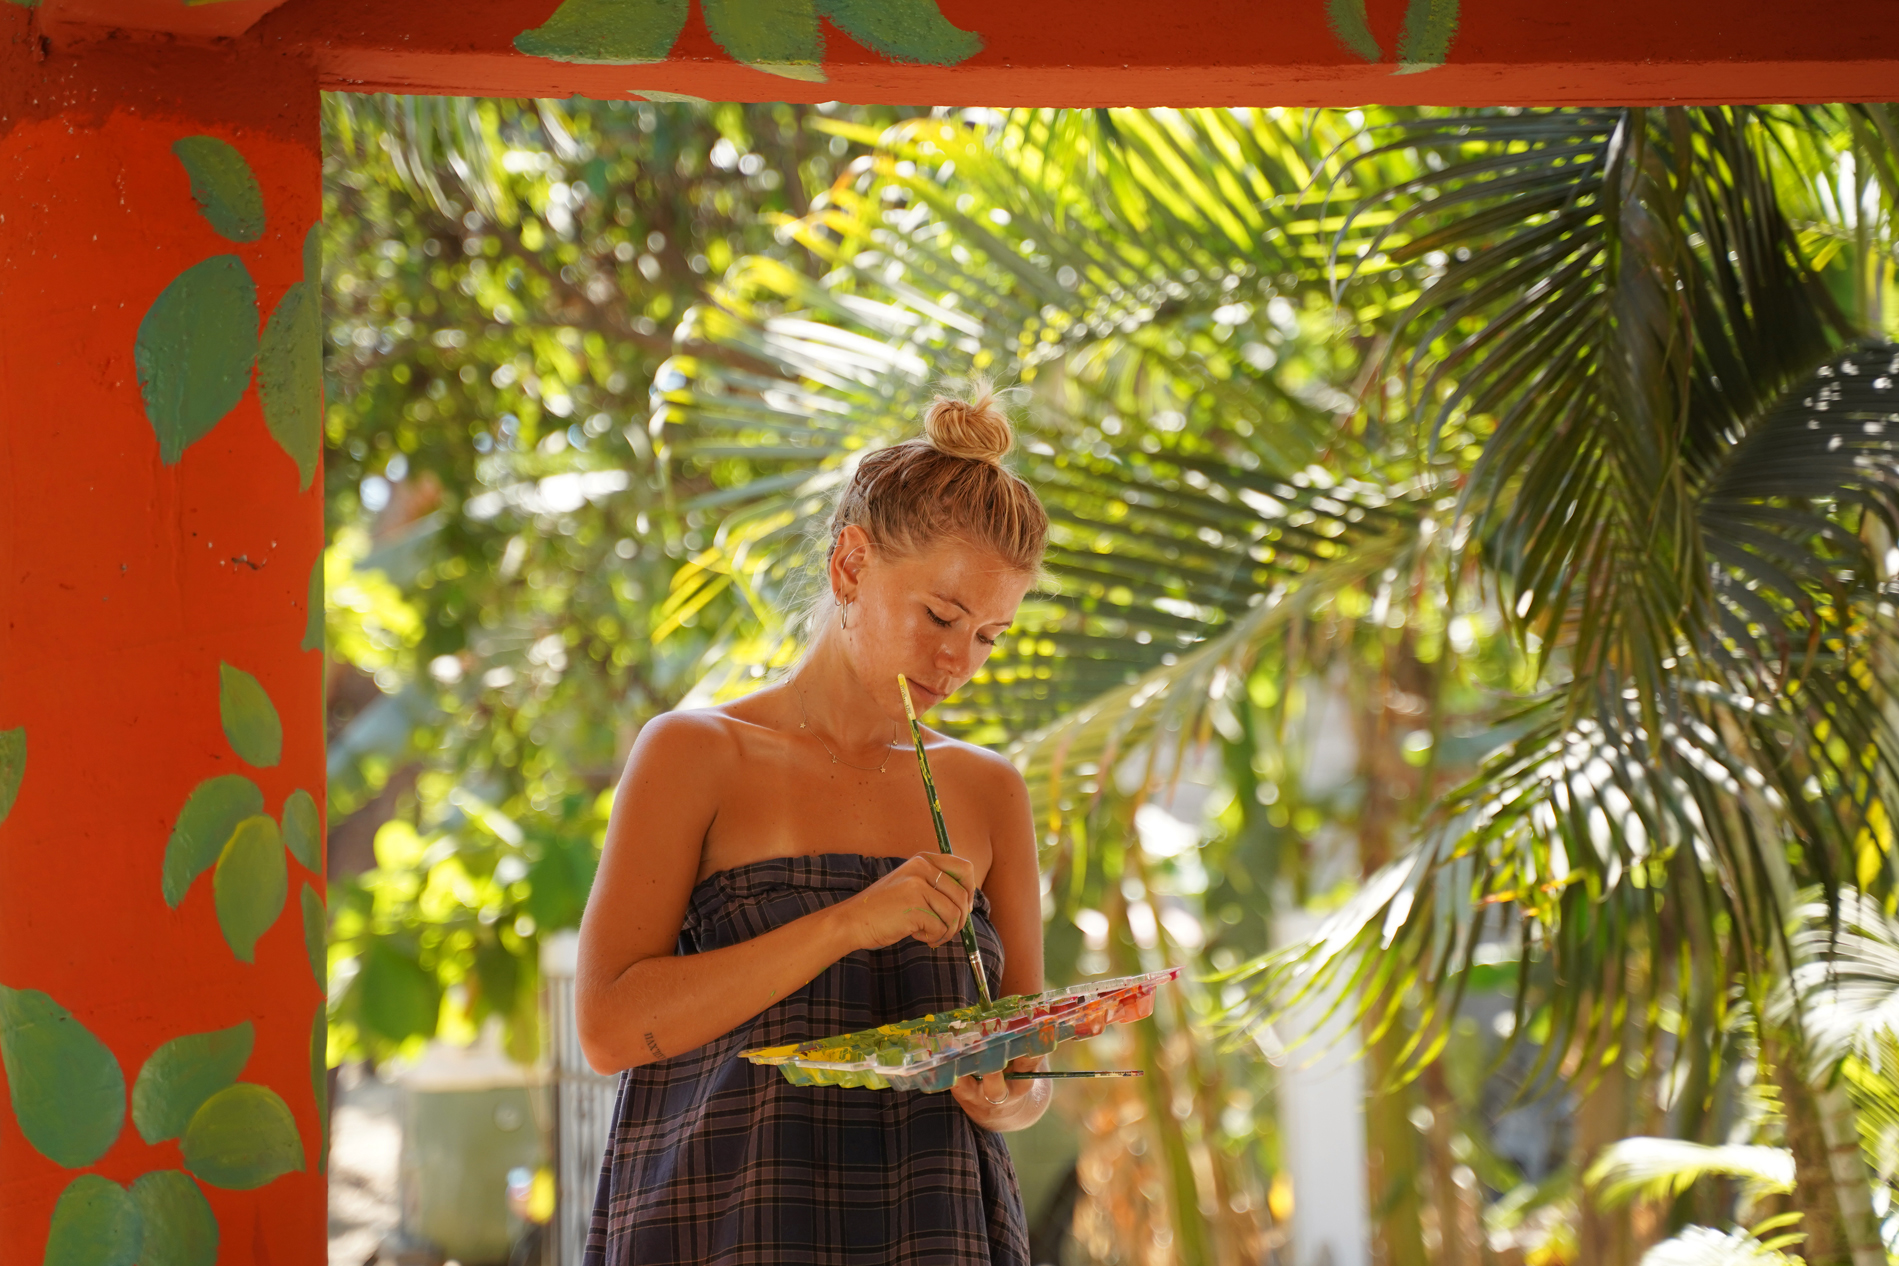 A young artist painting a mural in a tropical paradise.